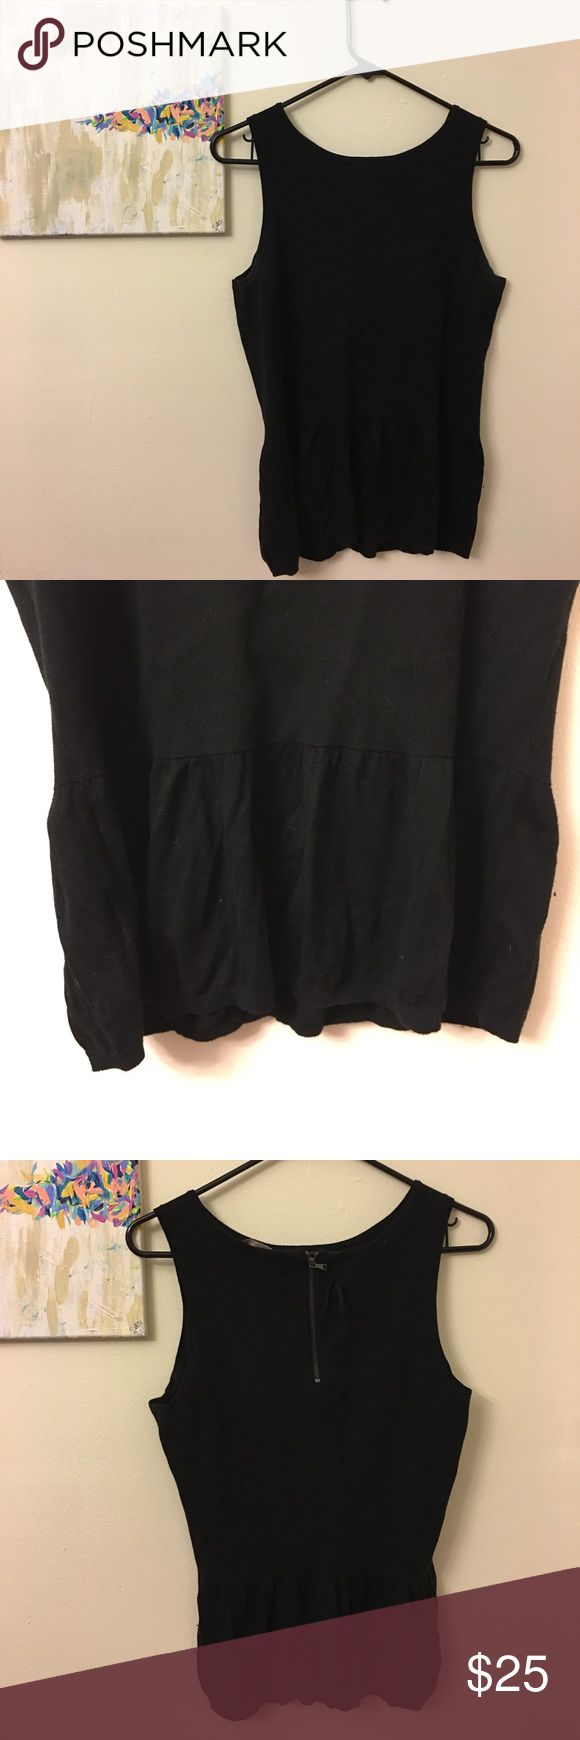 LOFT black peplum top In great condition, worn once! Top is thicker, more like a sweater, so super comfortable and cute with the peplum detail! Zips up back. LOFT Tops Tank Tops